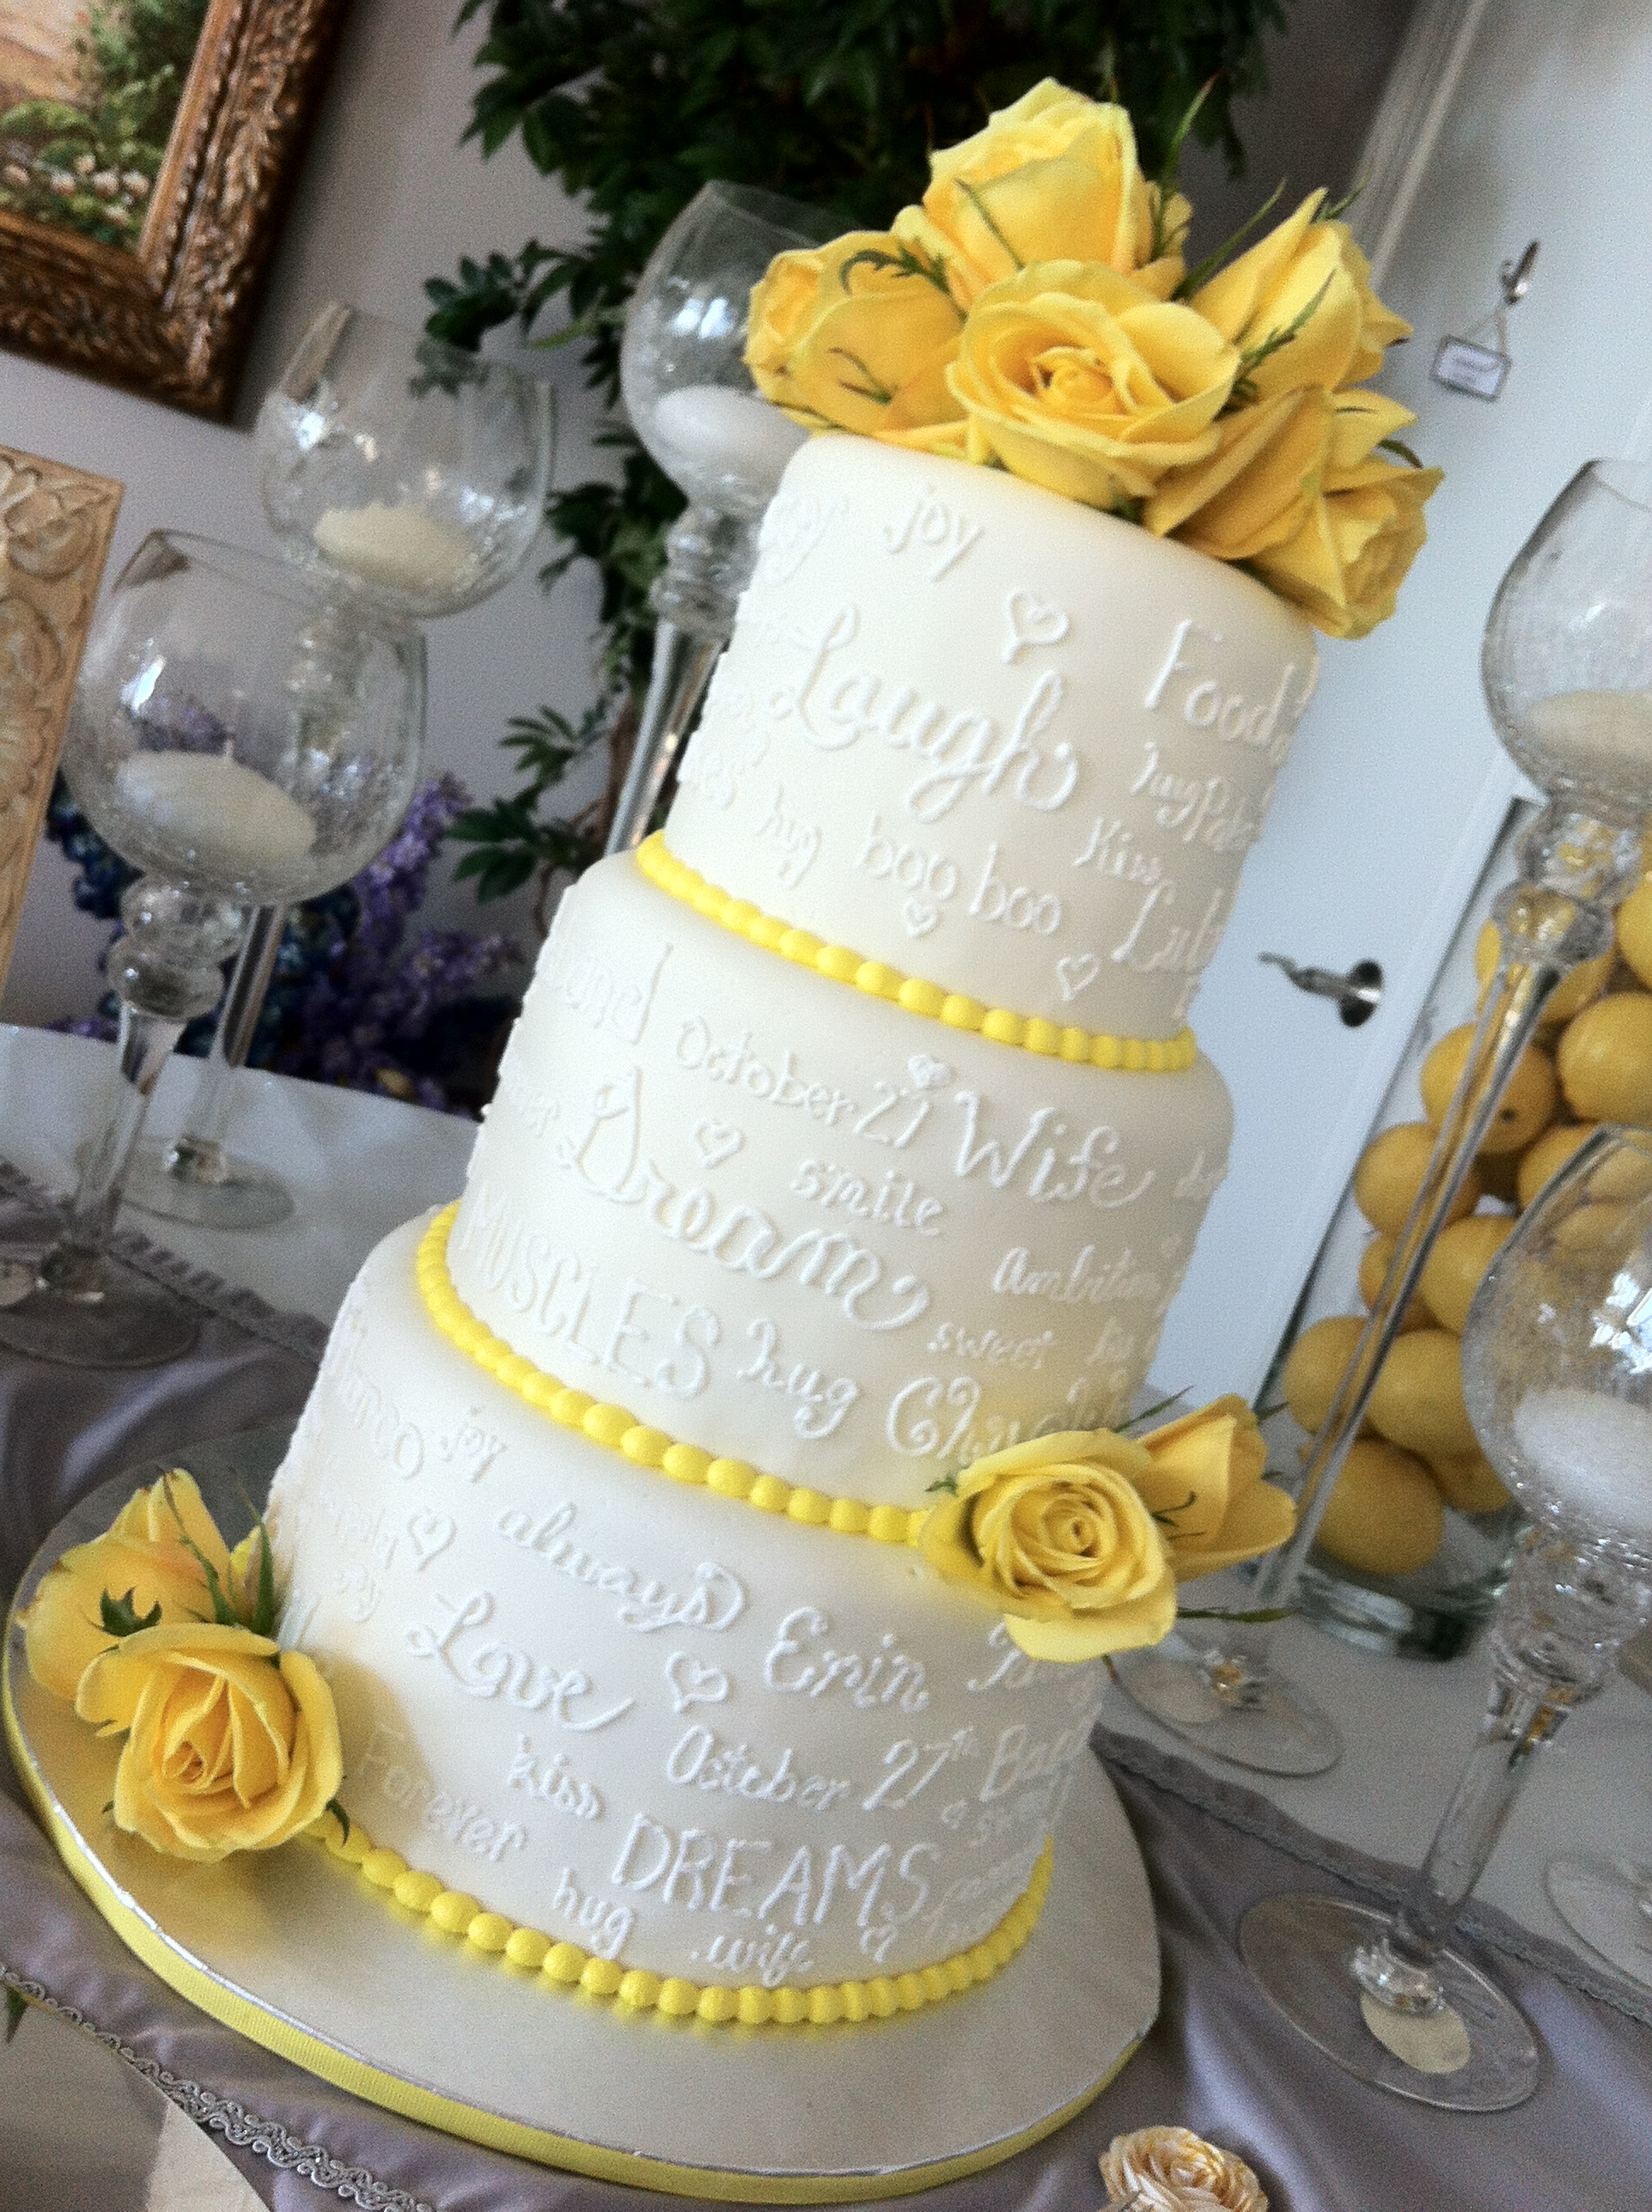 Erin    3 tier wedding cake with love notes   yellow accents     Destin         1936      2592 in Wedding Cakes